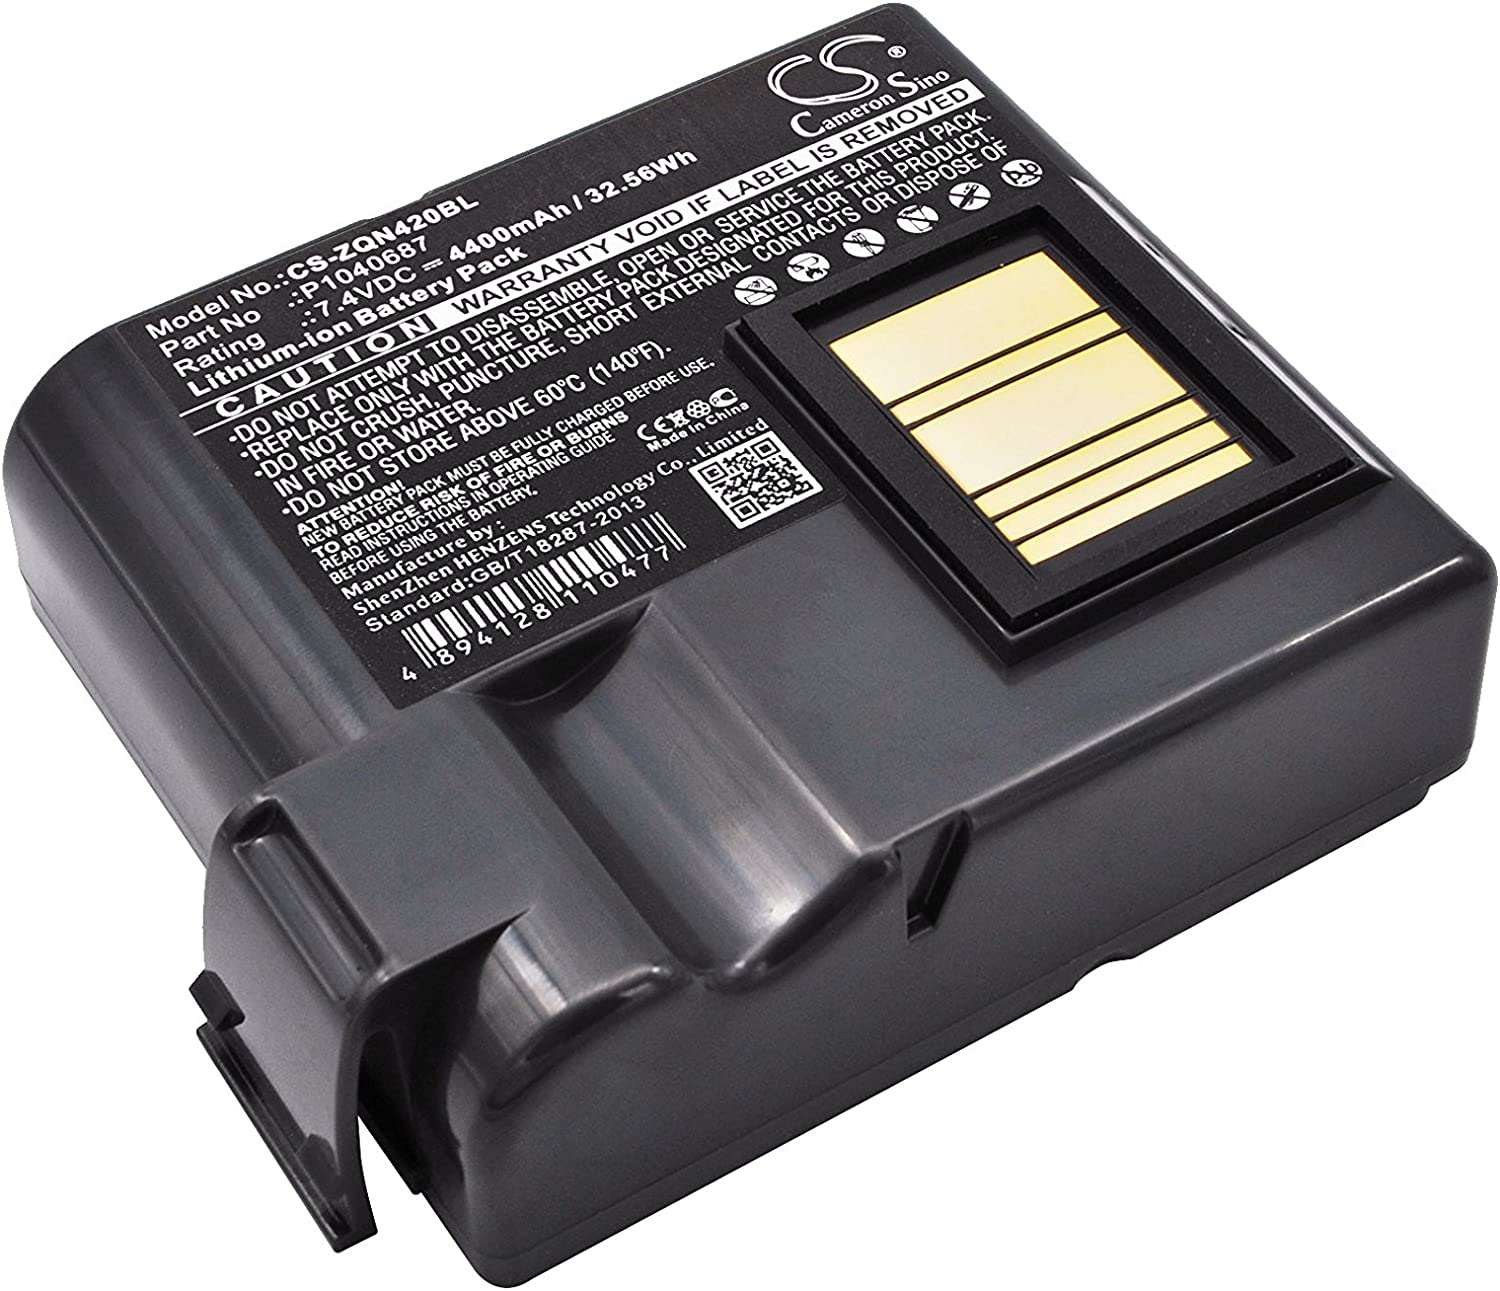 Replacement Battery for Zebra QLN420 P1040687 P1050667-016